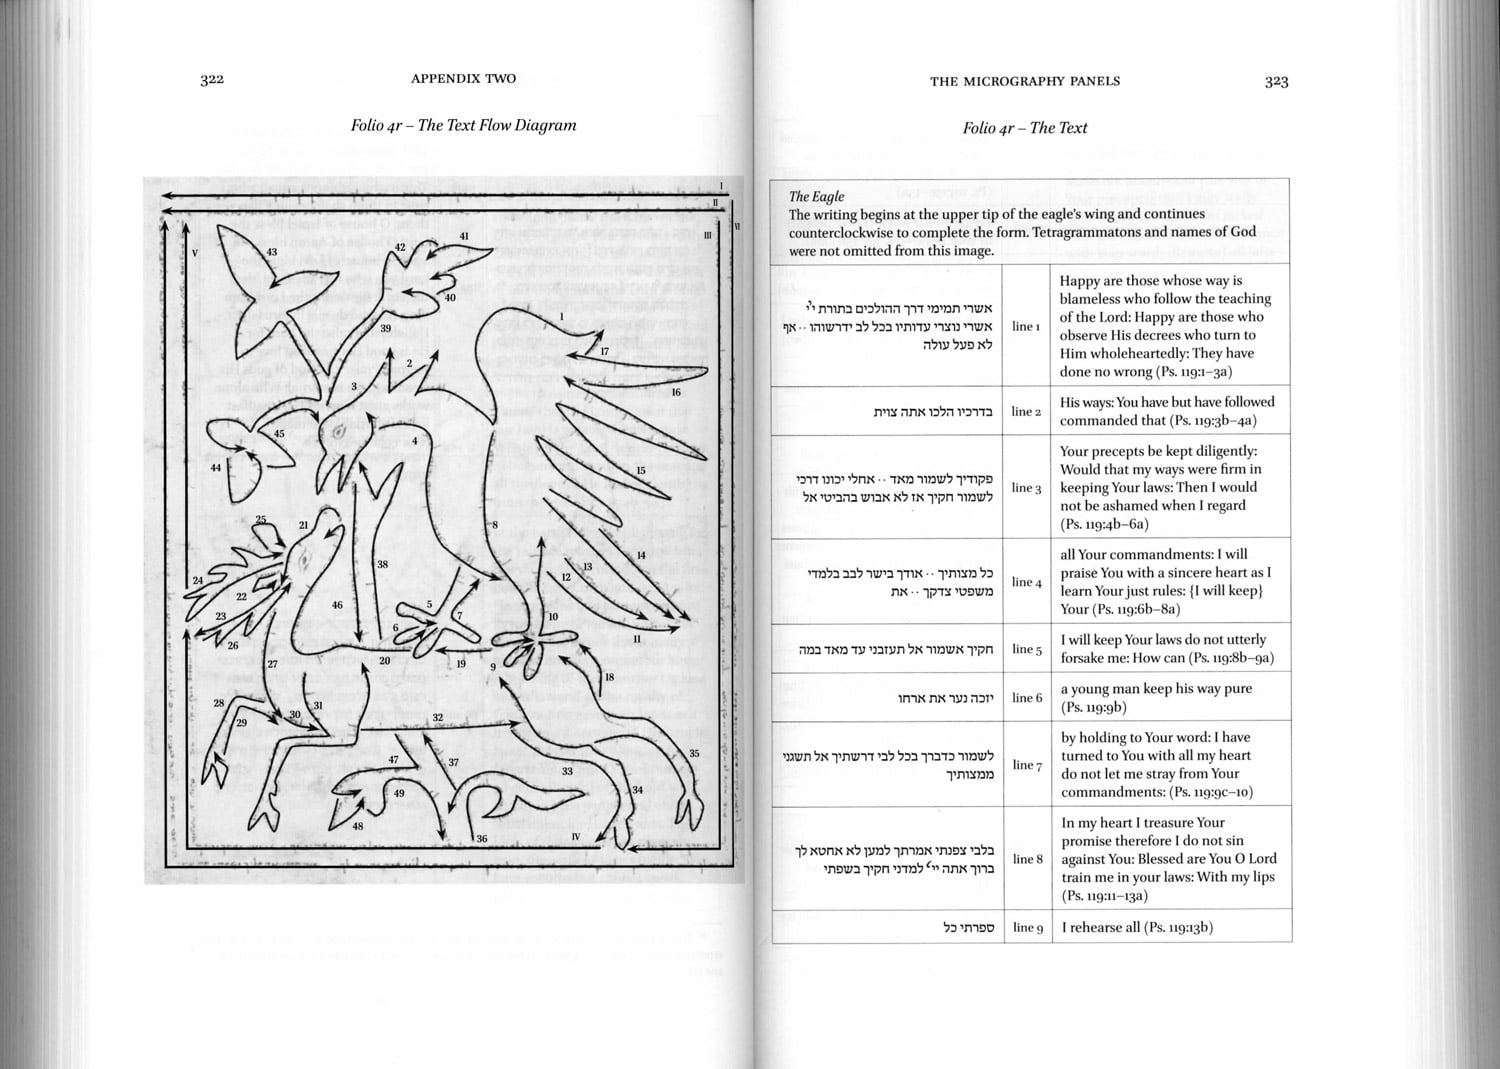 The detailed analysis of folio 4r described on pages 322-3 of the commentary volume.